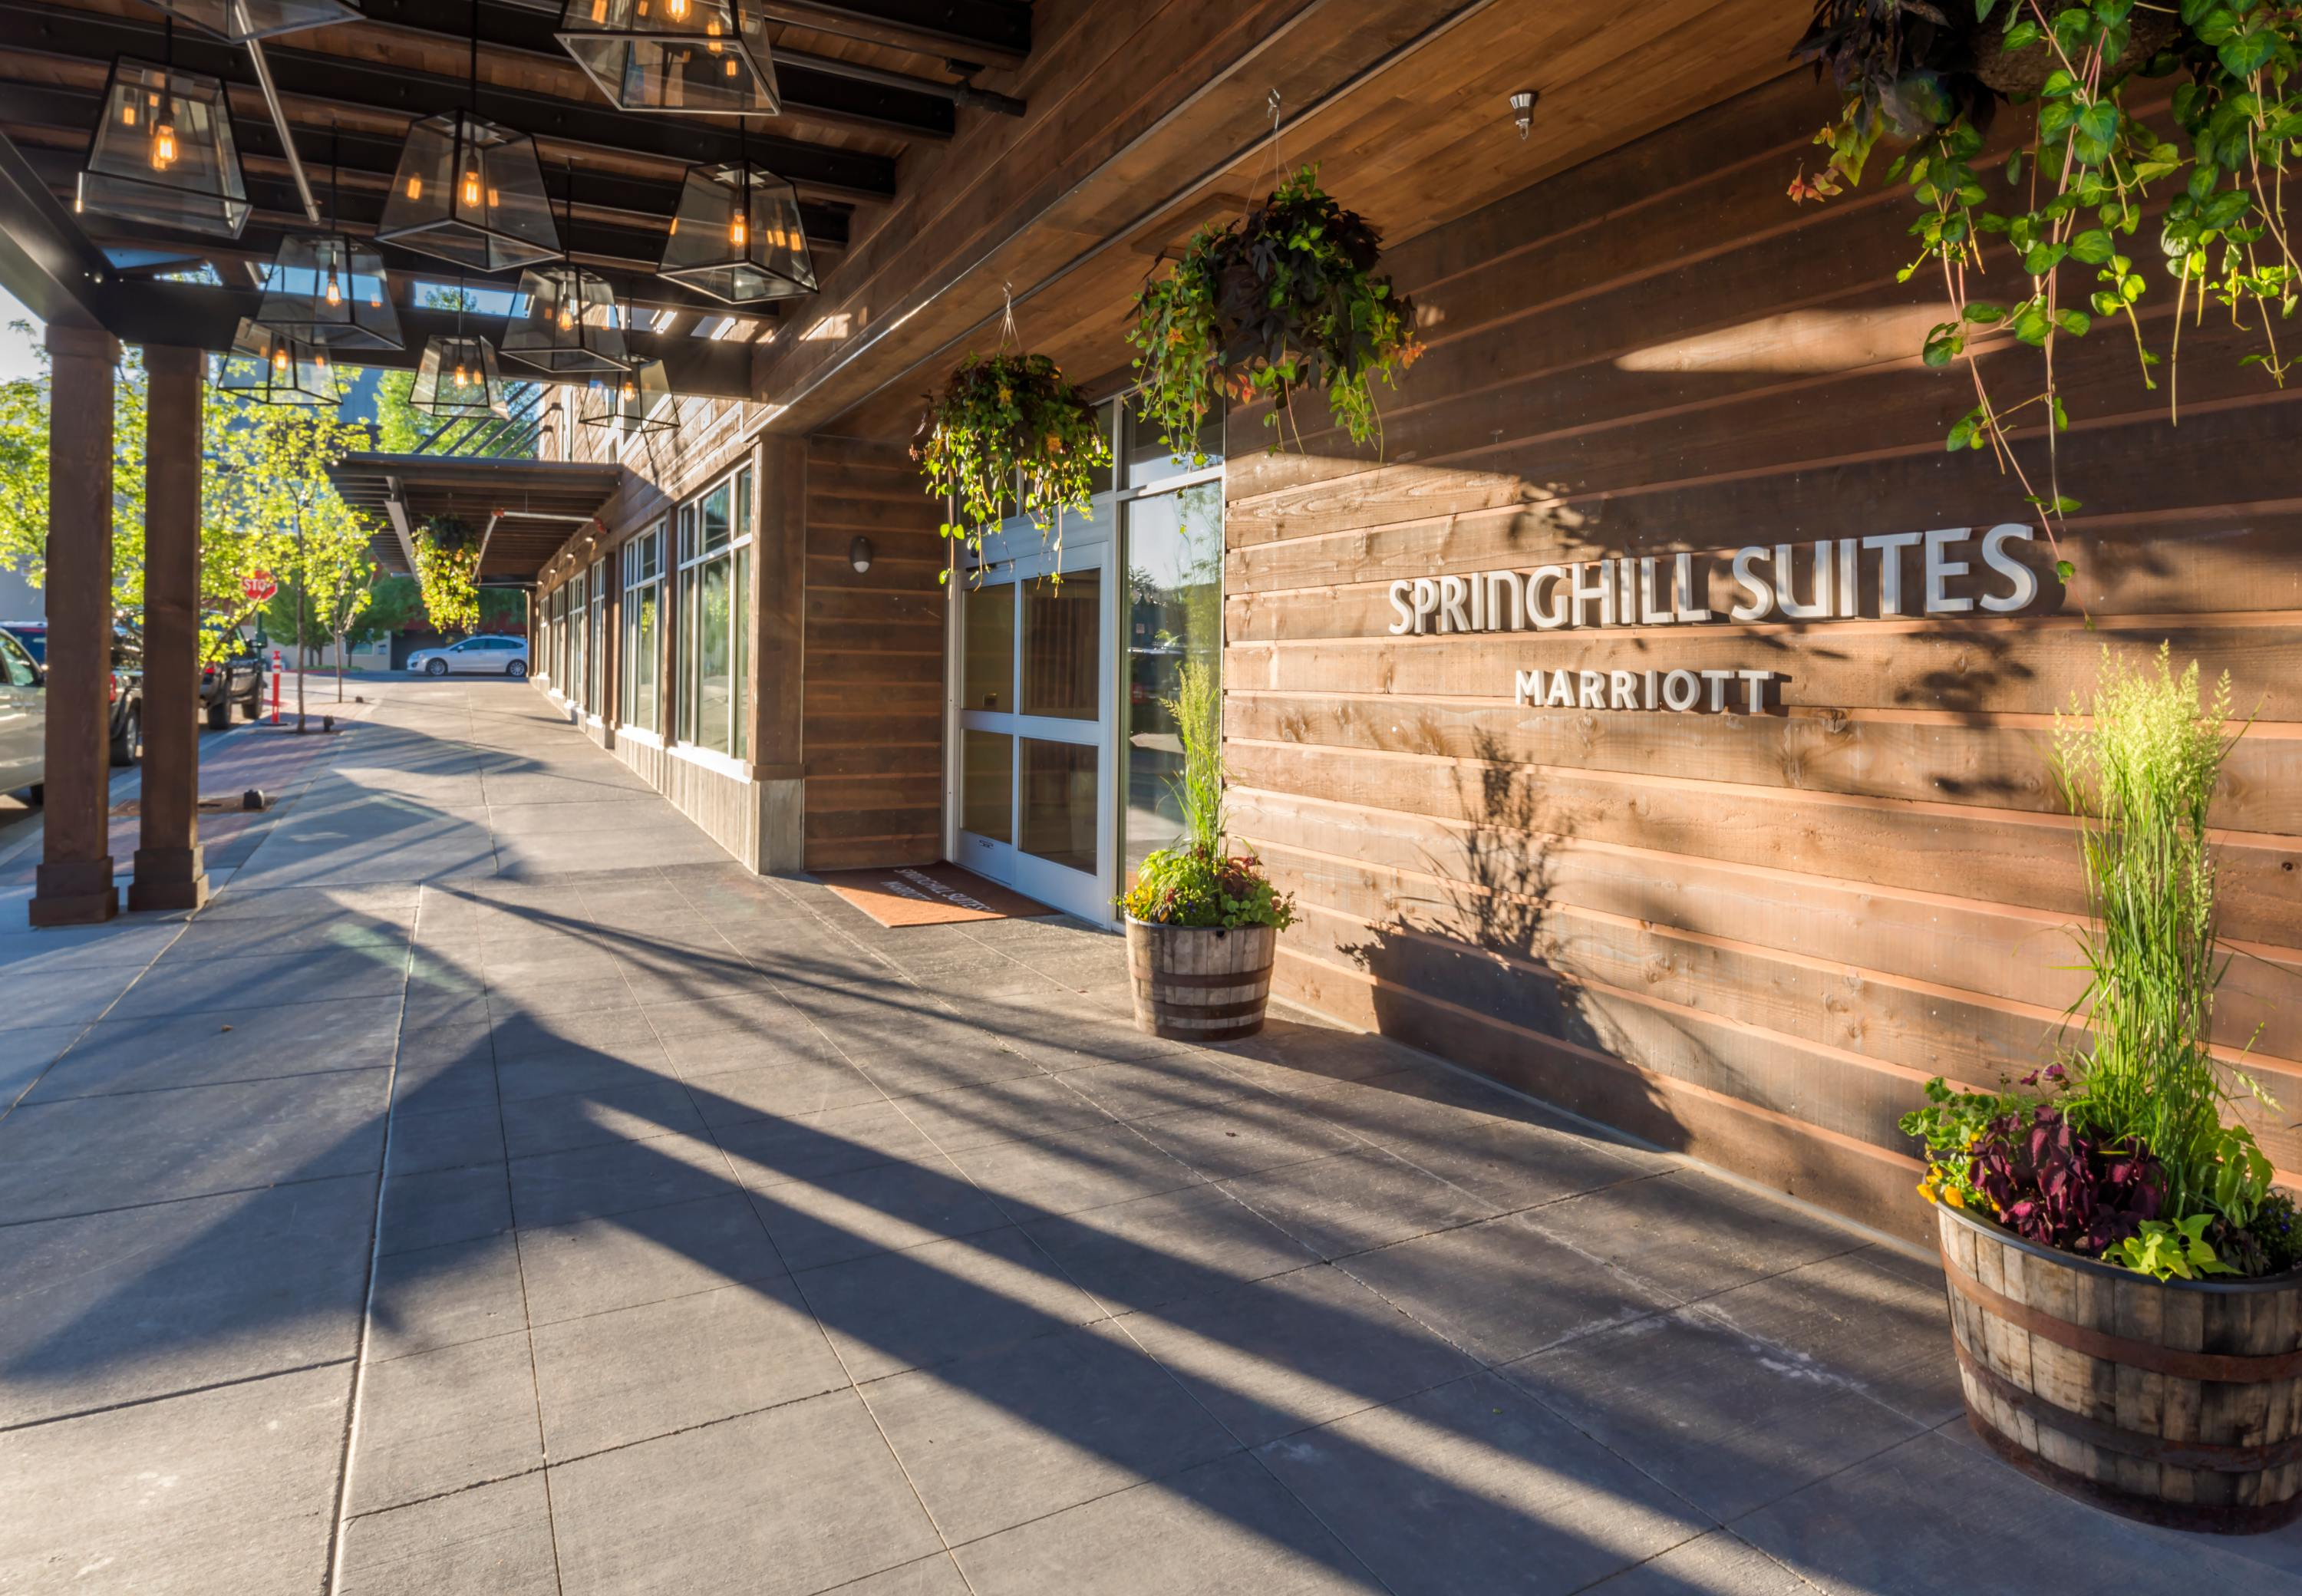 SpringHill Suites by Marriott Jackson Hole image 2